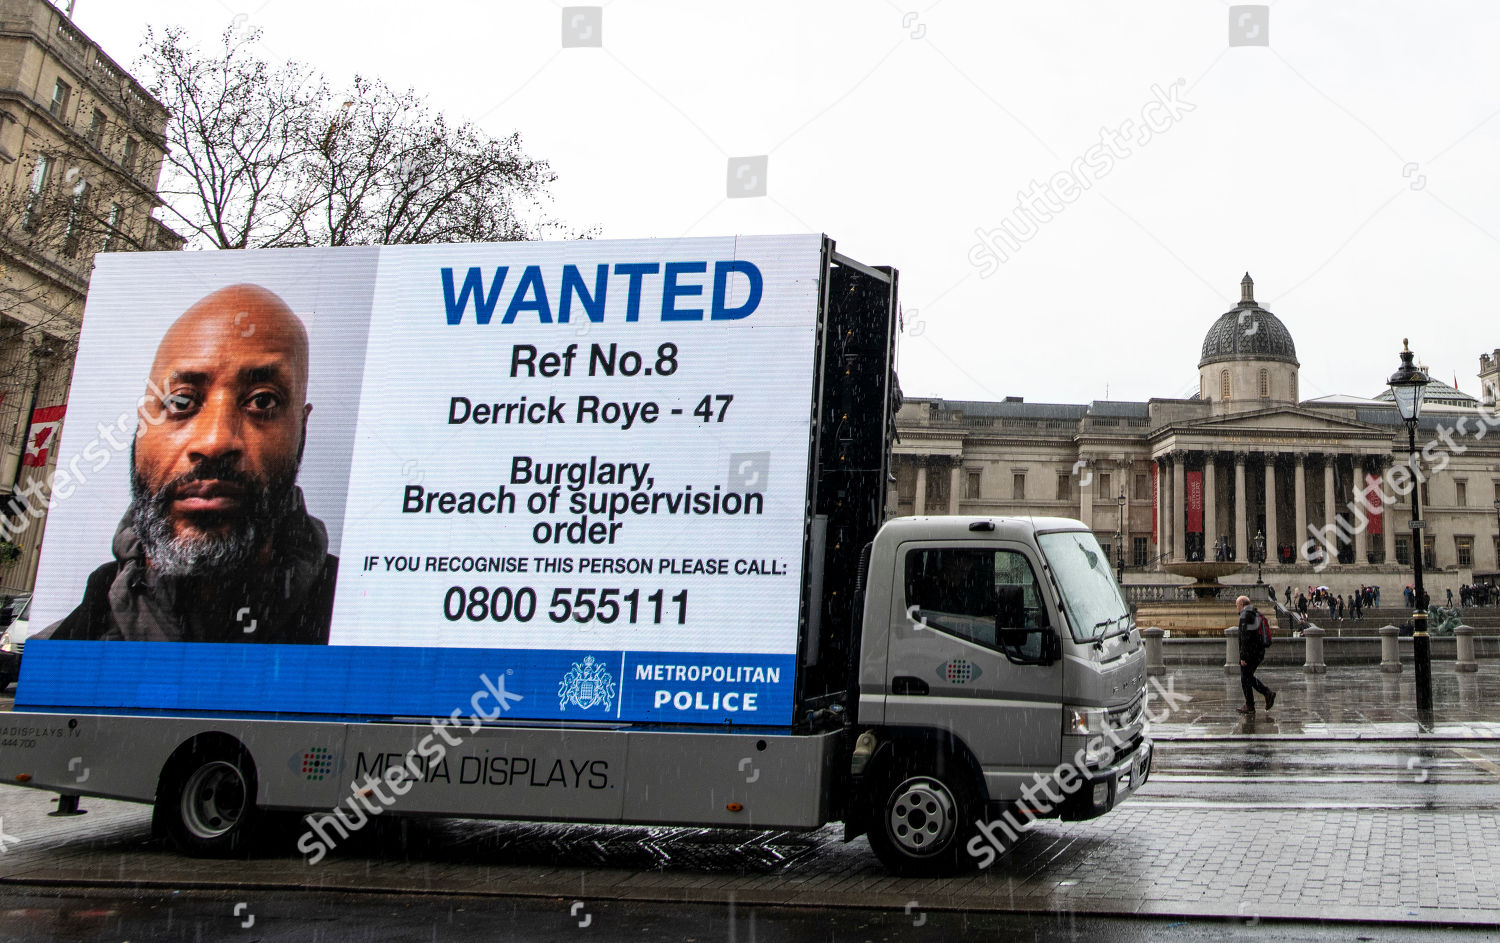 Stock photo of Wanted criminal posters, London, UK - 18 Mar 2019